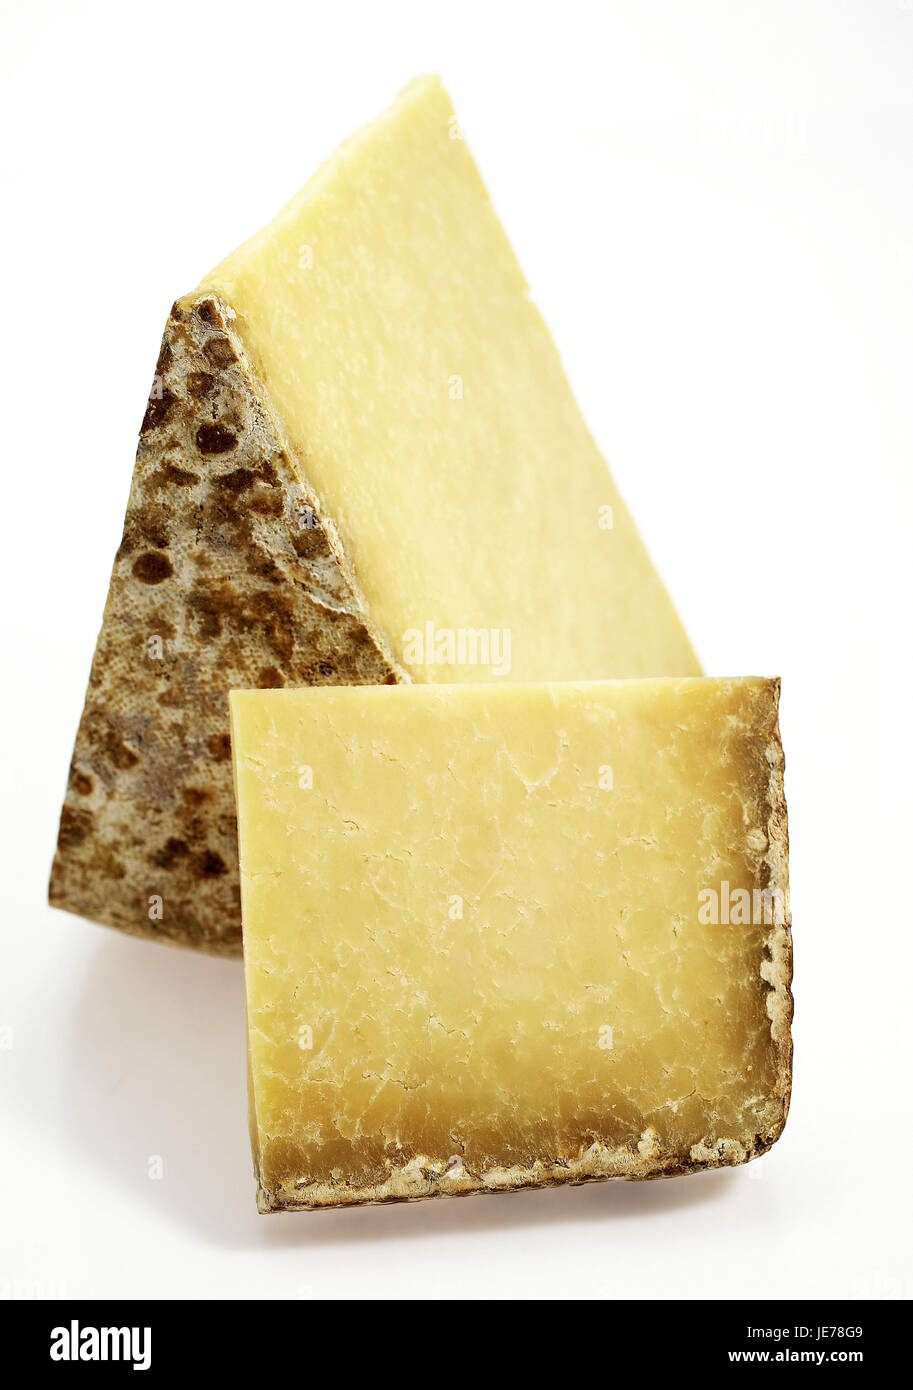 Chantal, French cheese, production of cow's milk, - Stock Image